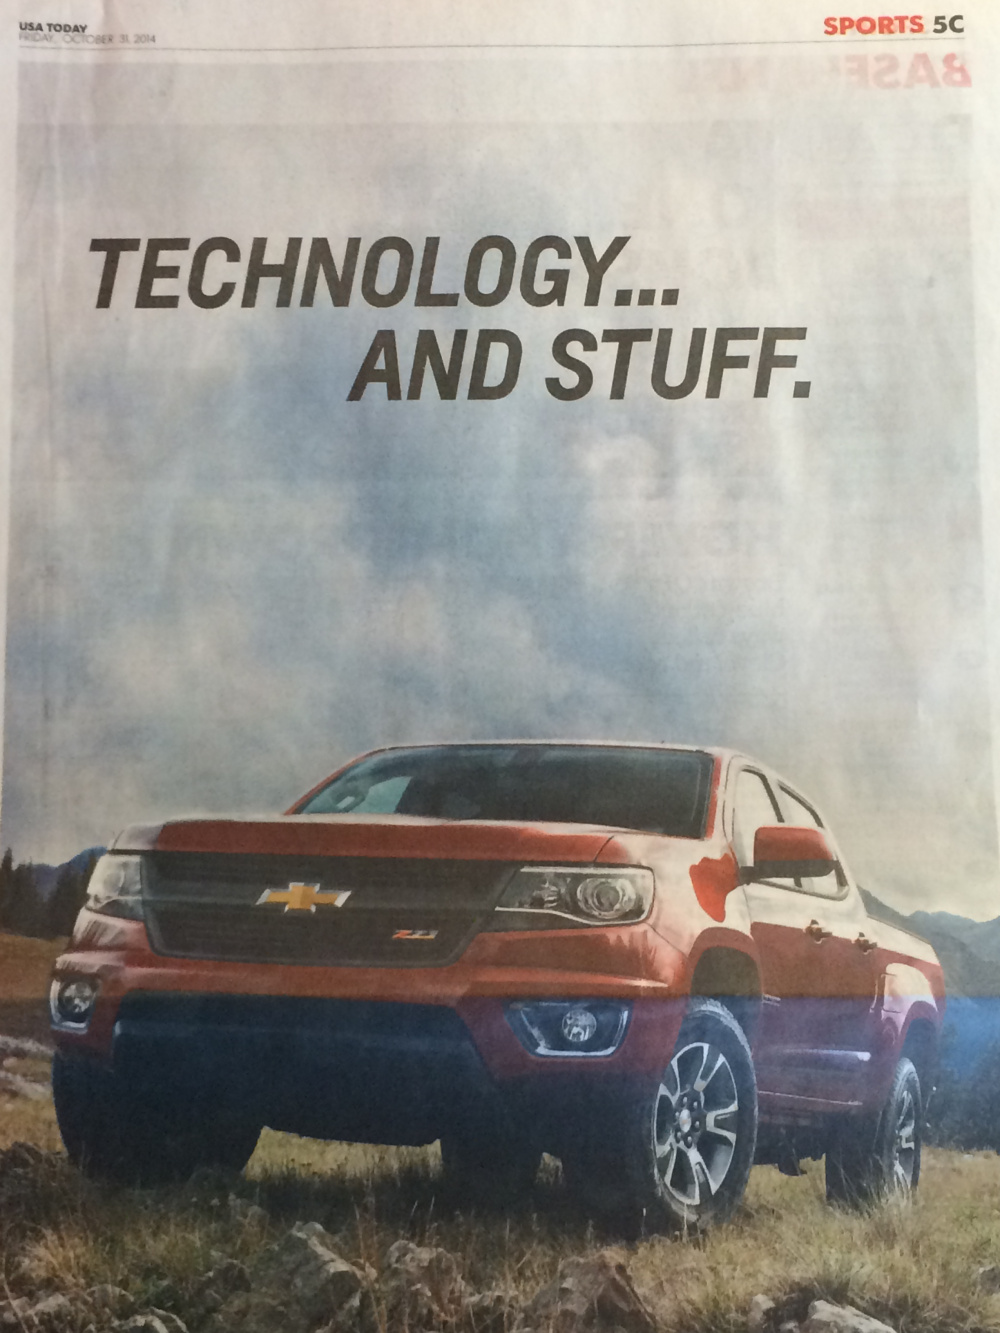 Newspaper ad of new Chevrolet pickup truck; headline 'Technology and stuff'